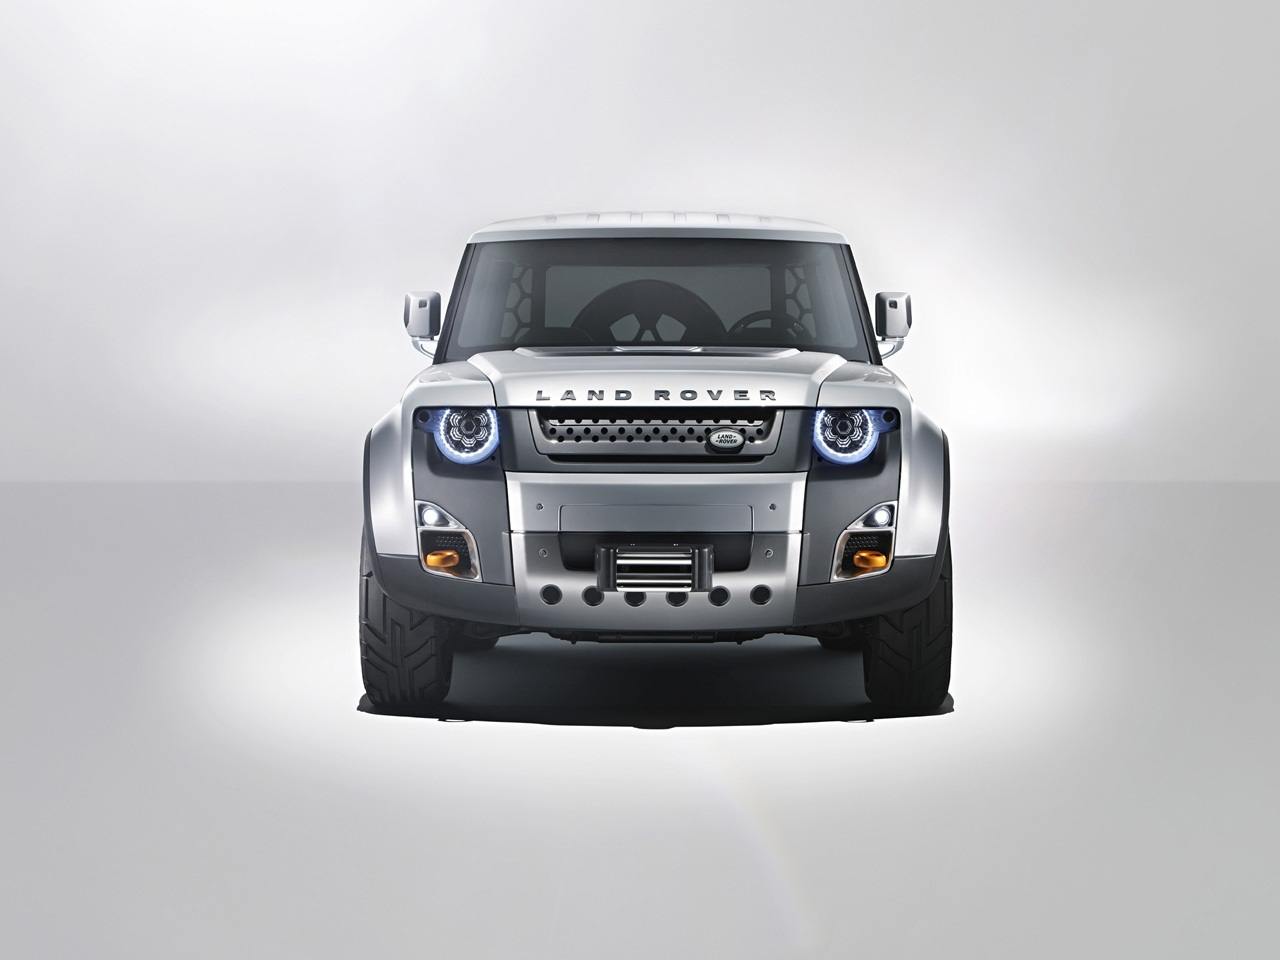 2011 land rover dc100 concept side 2 1280x960 wallpaper - 2011 Land Rover Dc100 Concept Wallpapers